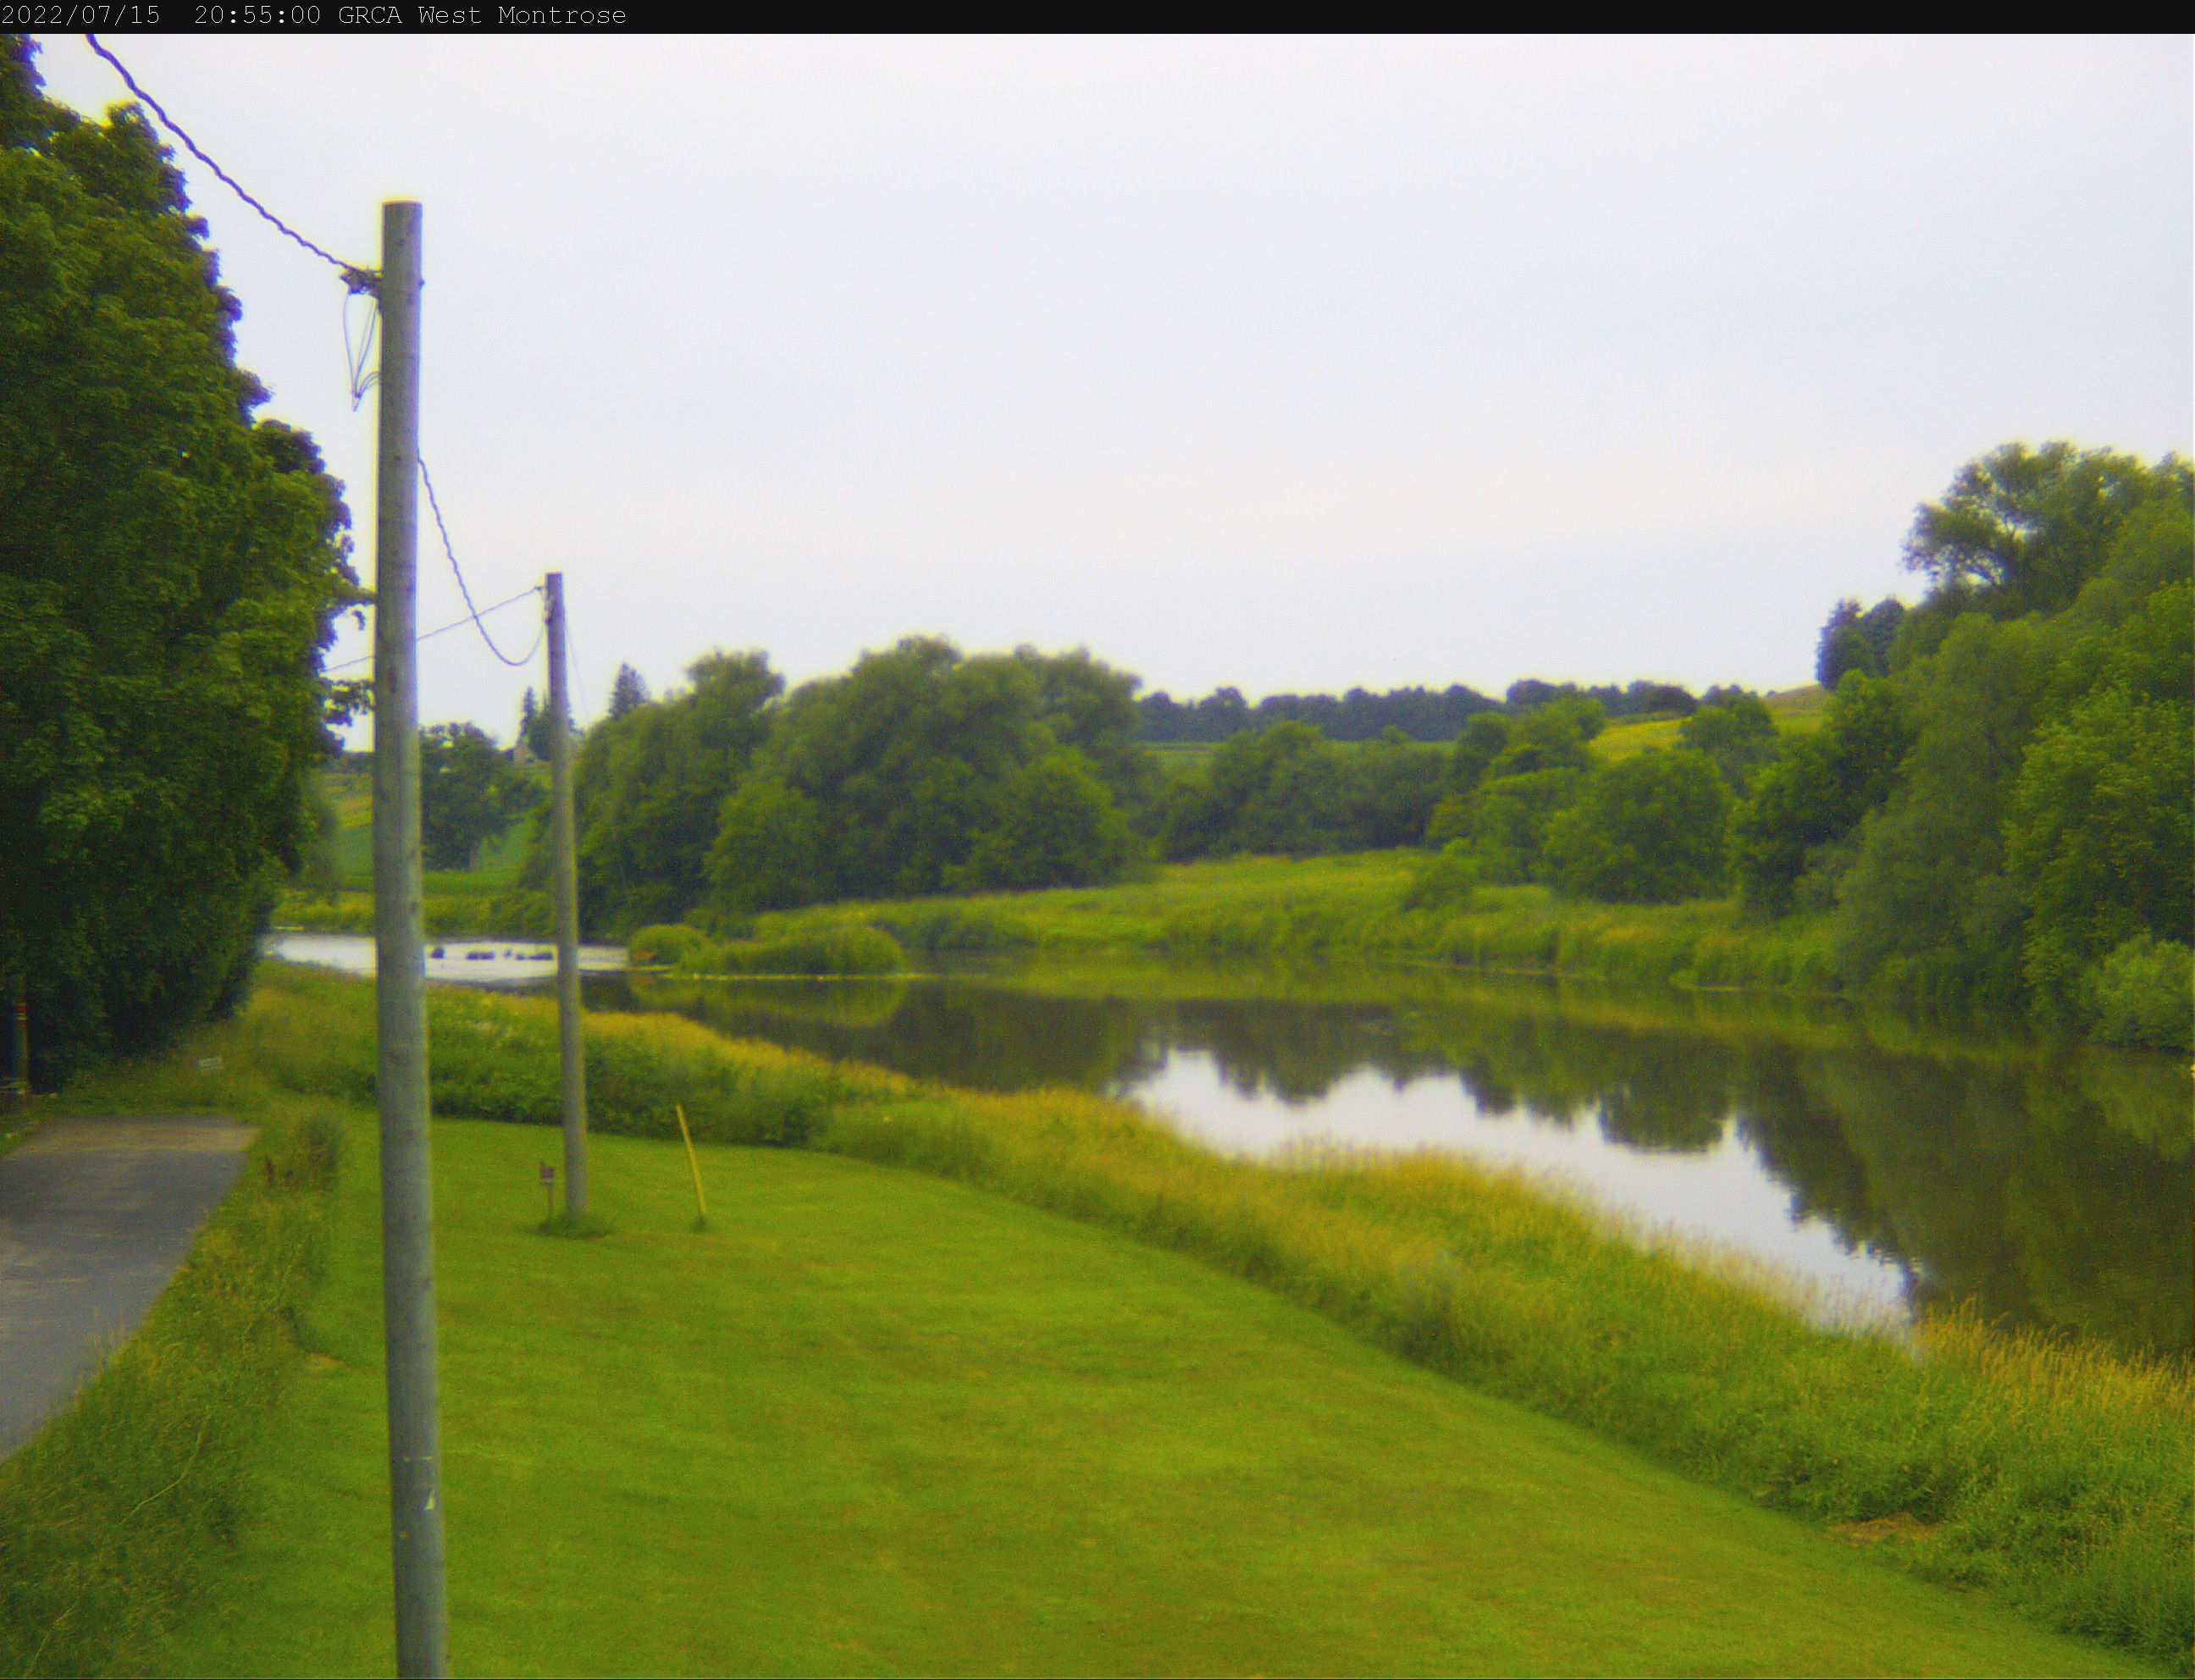 West Montrose river cam still photo